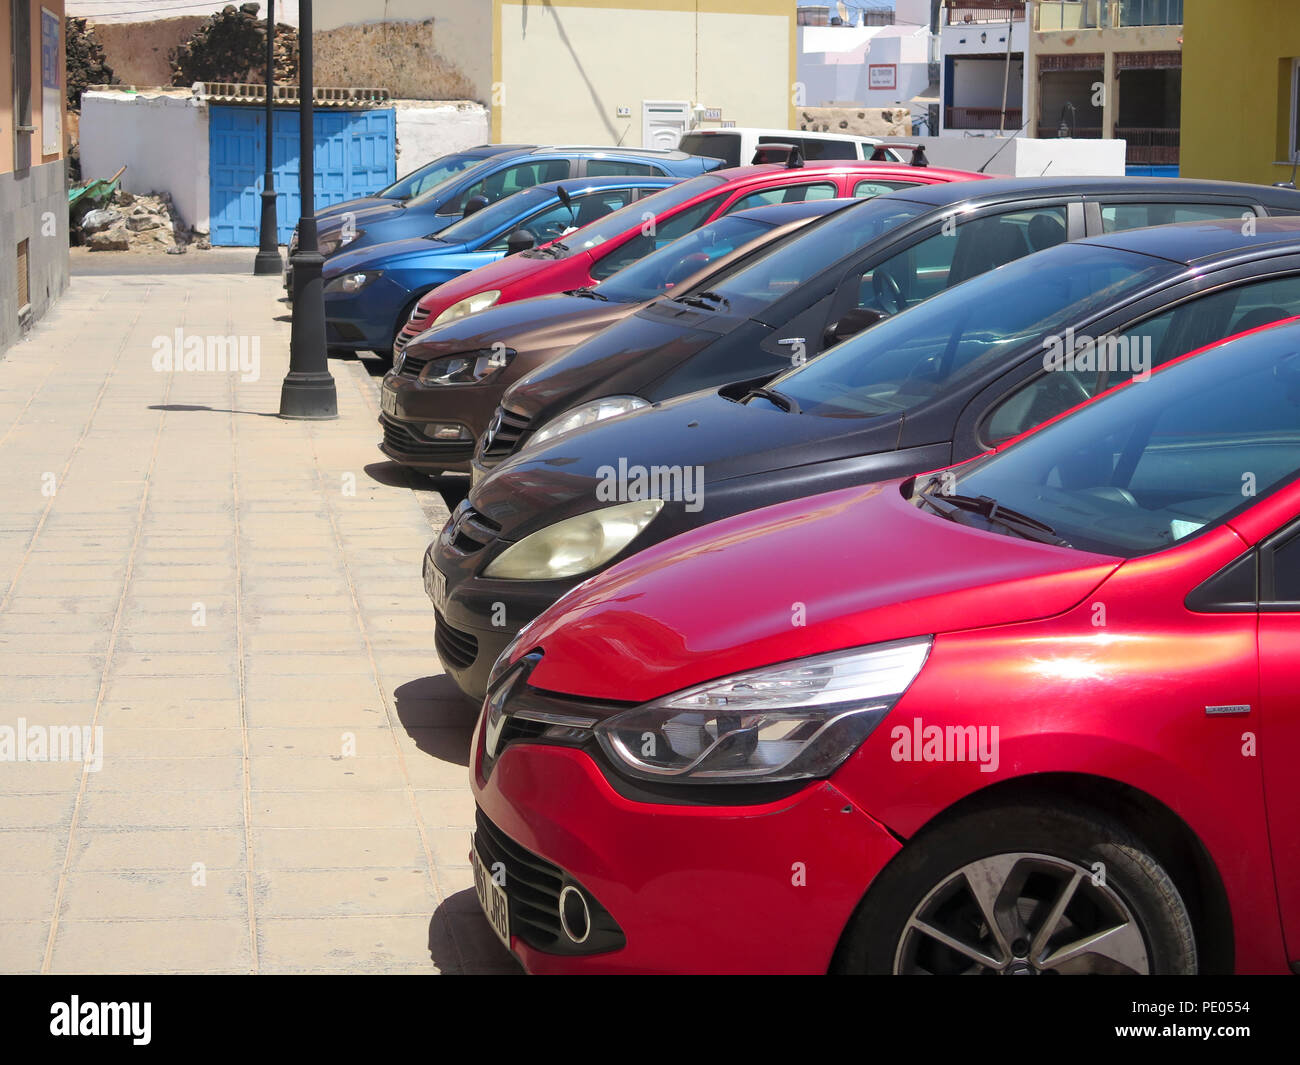 Row of small hatchback cars parked at side of street in bright sun - Stock Image